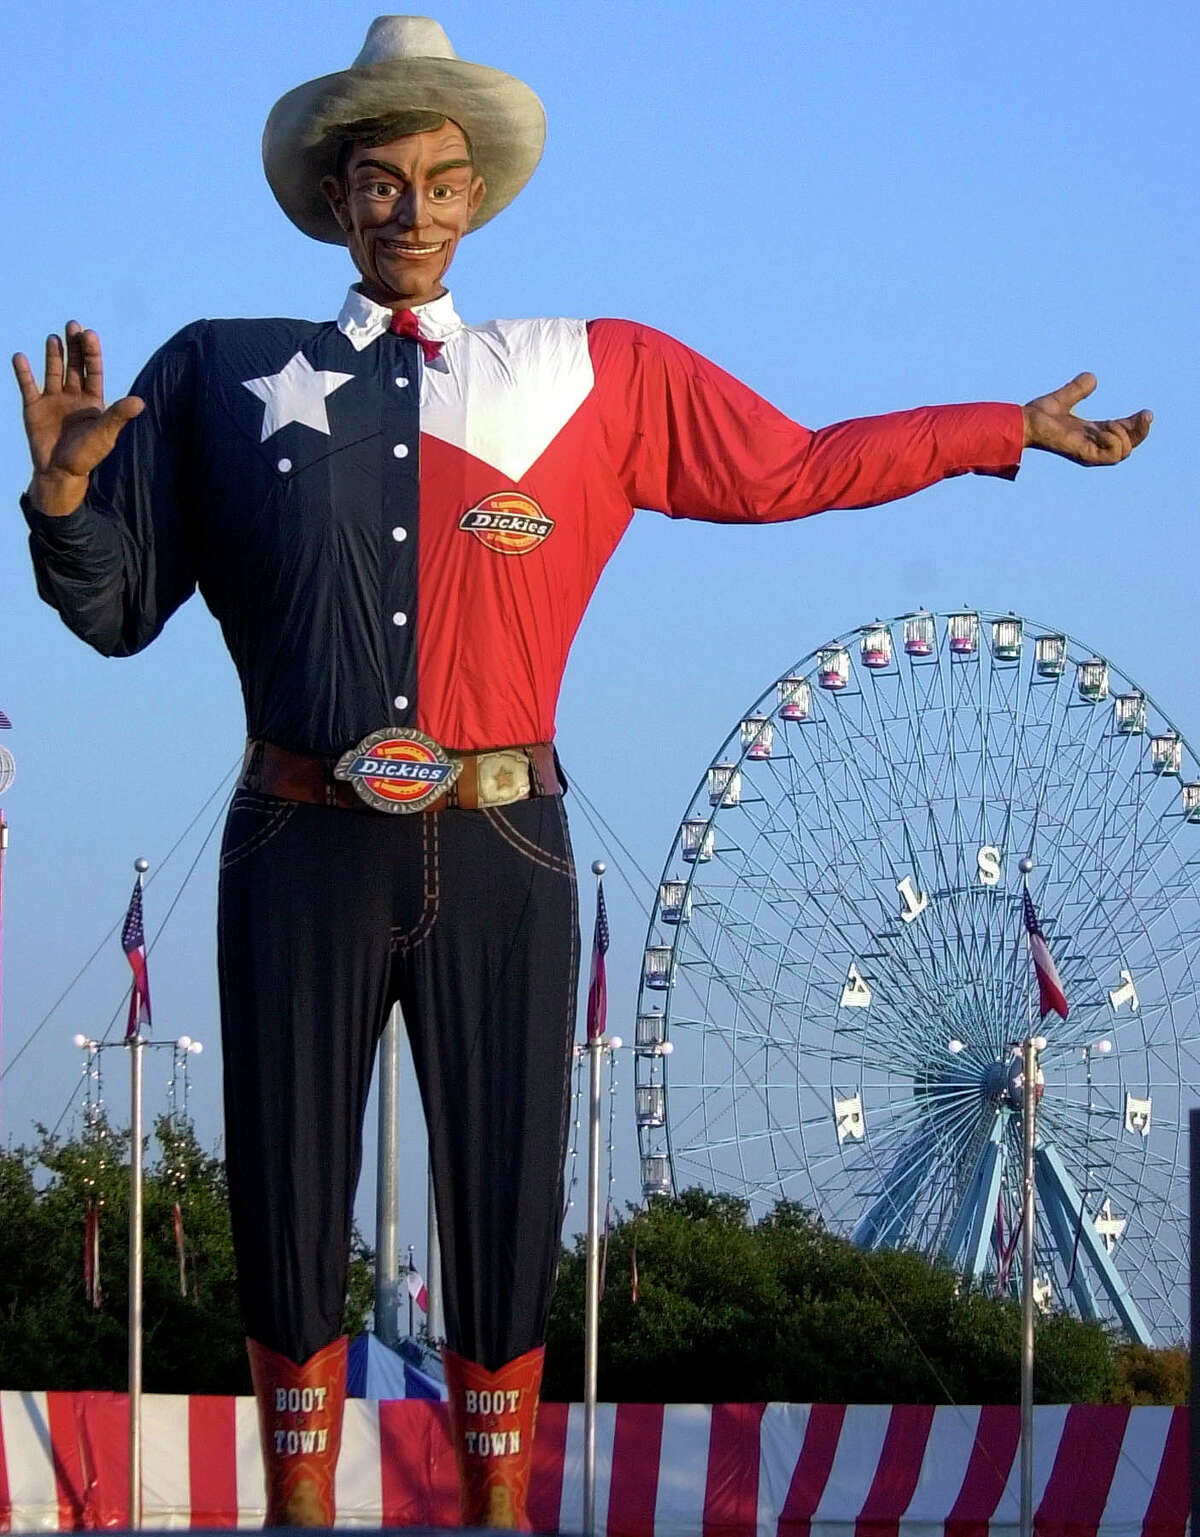 STATEWIDE: The average Texan (and yeah, we'll consider Big Tex here the average Texan) earns $43,620 per year - or about $20.97 per hour - according to the U.S. Bureau of Labor statistics. Here's how Texans fair on a city-by-city breakdown...